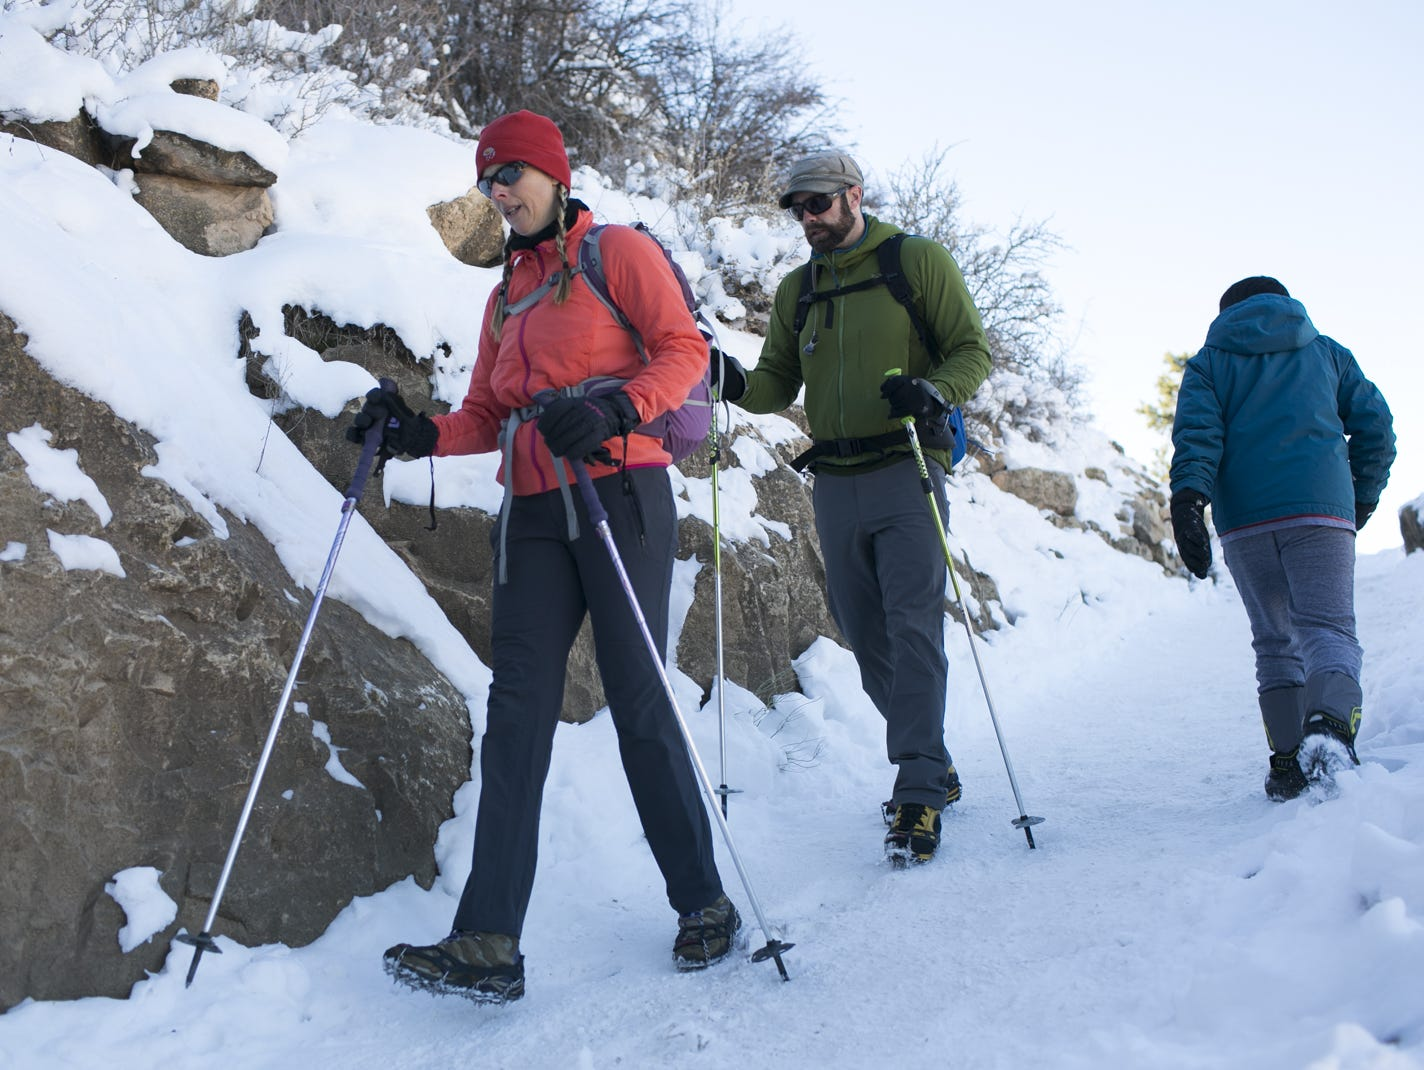 Hikers enjoy the winter weather at Grand Canyon National Park on Jan. 4, 2019. The park was staffed at minimum capacity due to the government shutdown but retained much of its services due to an executive order issued by Arizona Gov. Doug Ducey to run the park with state funds in the event of a shutdown.